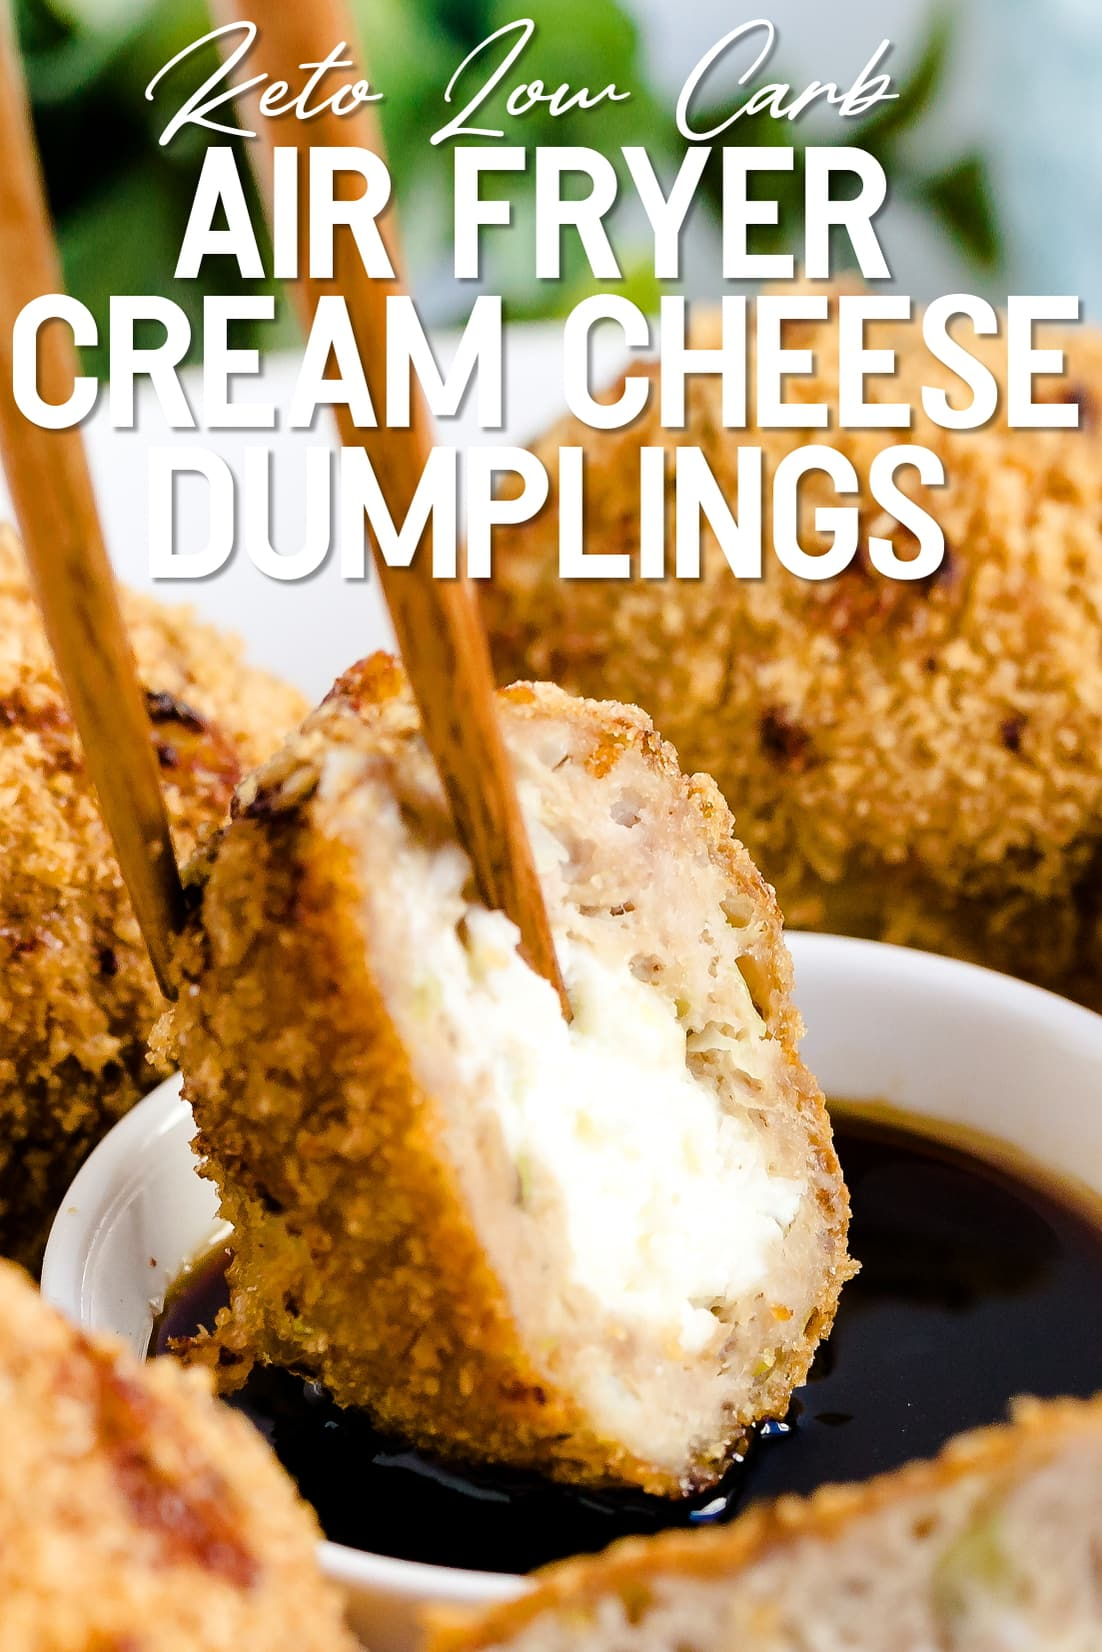 Cream Cheese Dumpling being dipped in sauce